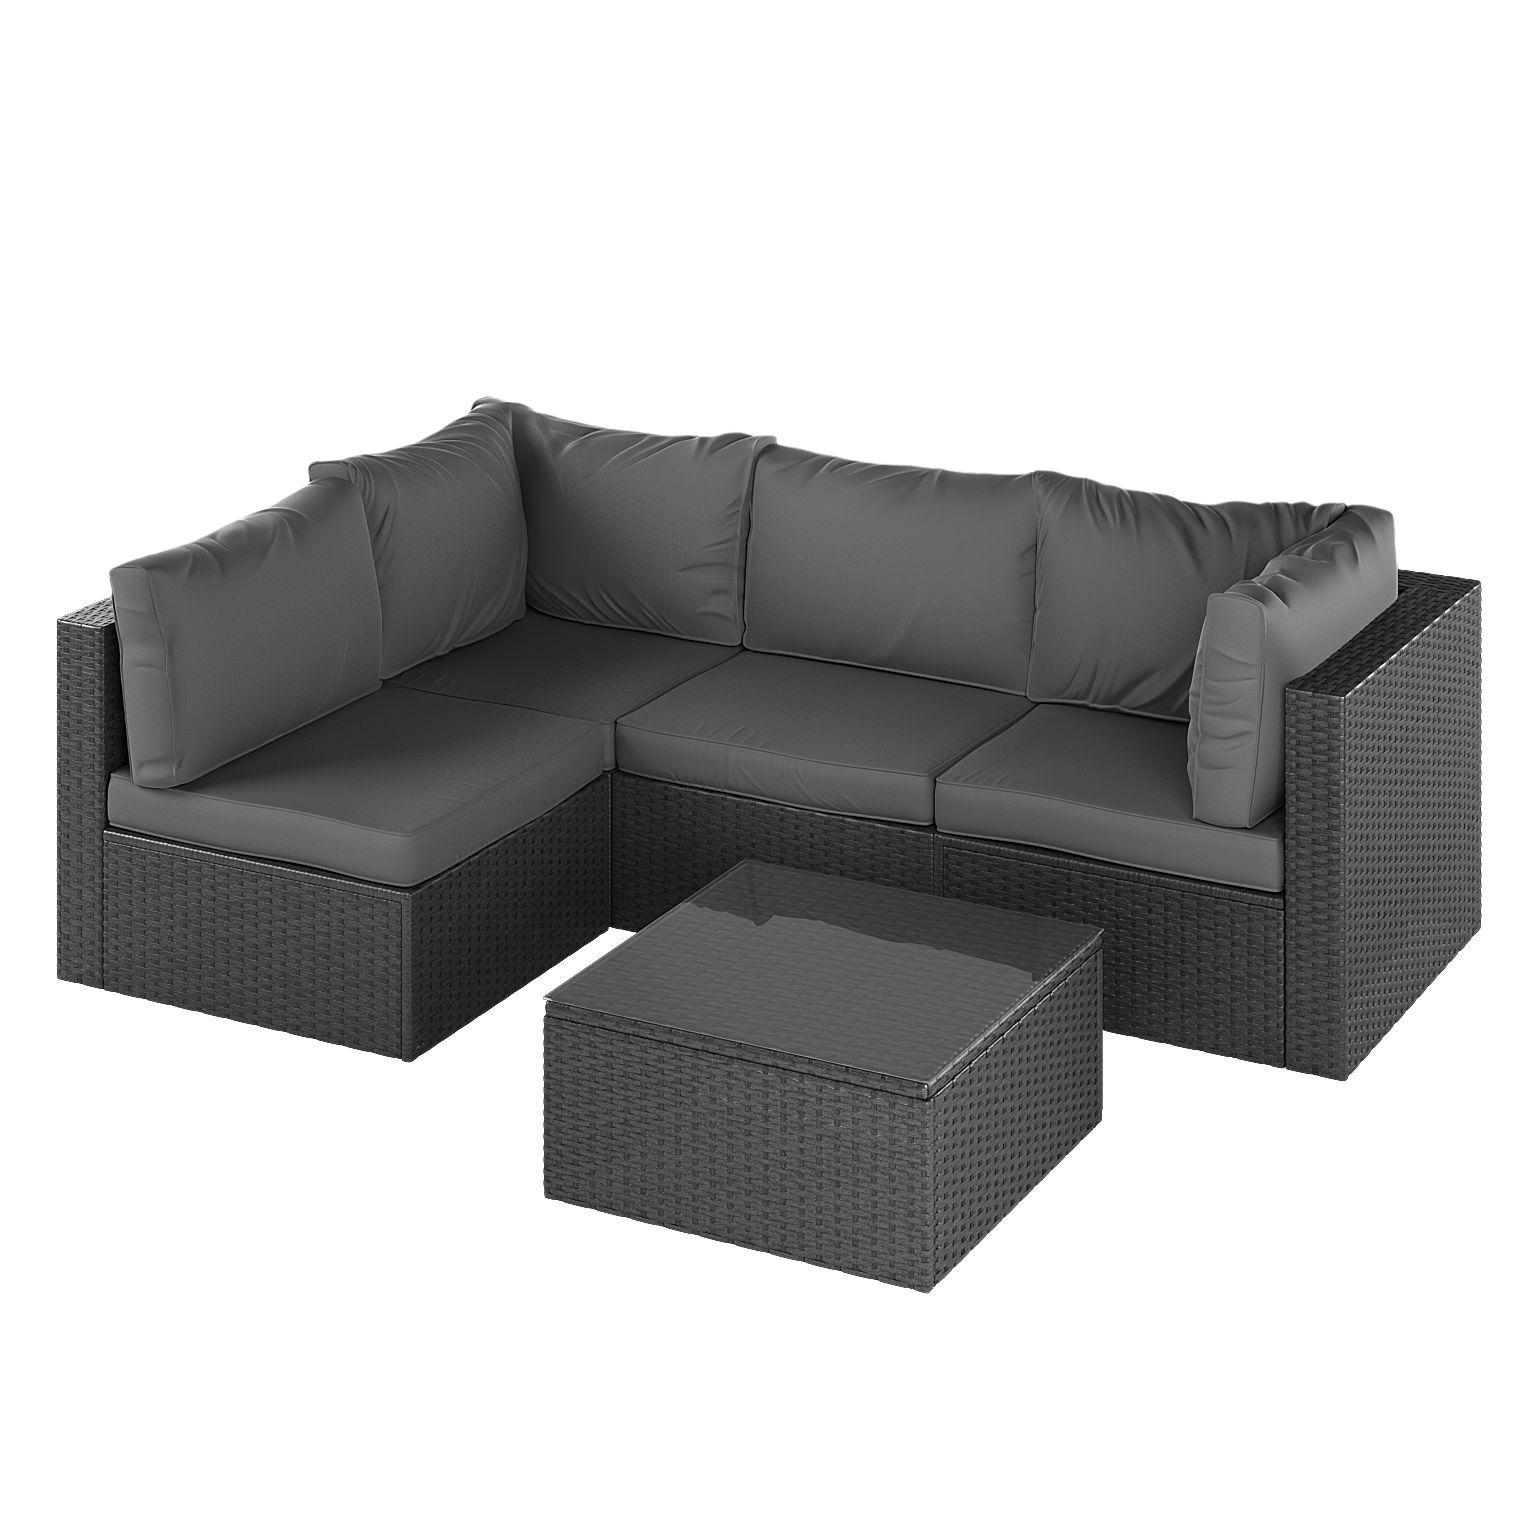 d13a45defc Loungeset Paradise Lounge IV (5-teilig) | Products in 2019 | Outdoor ...